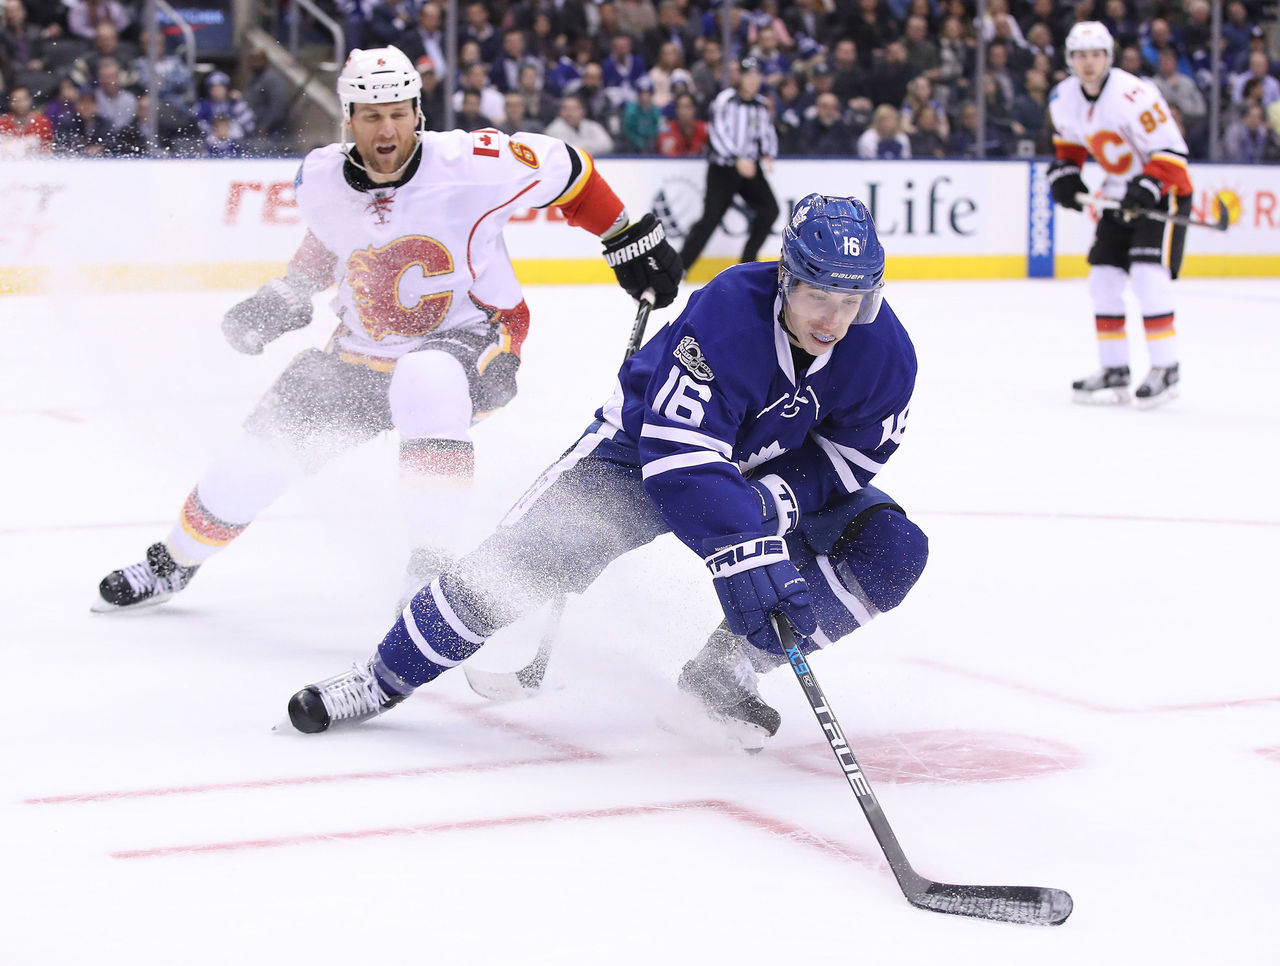 Cropped 2017 01 24t035335z 1909073853 nocid rtrmadp 3 nhl calgary flames at toronto maple leafs